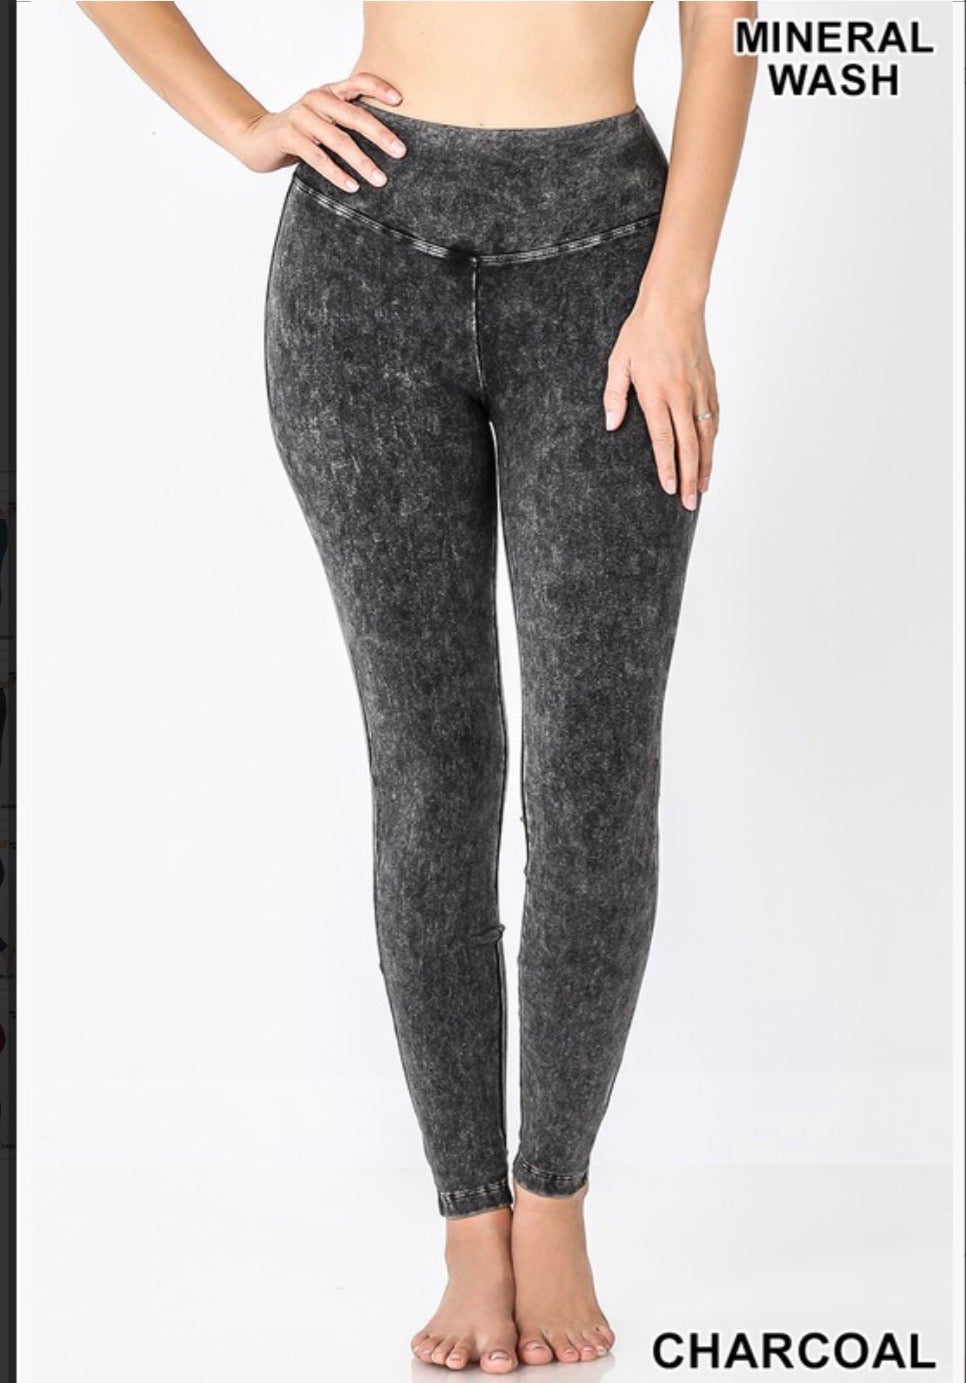 Mineral Wash Yoga Athleisure Pants